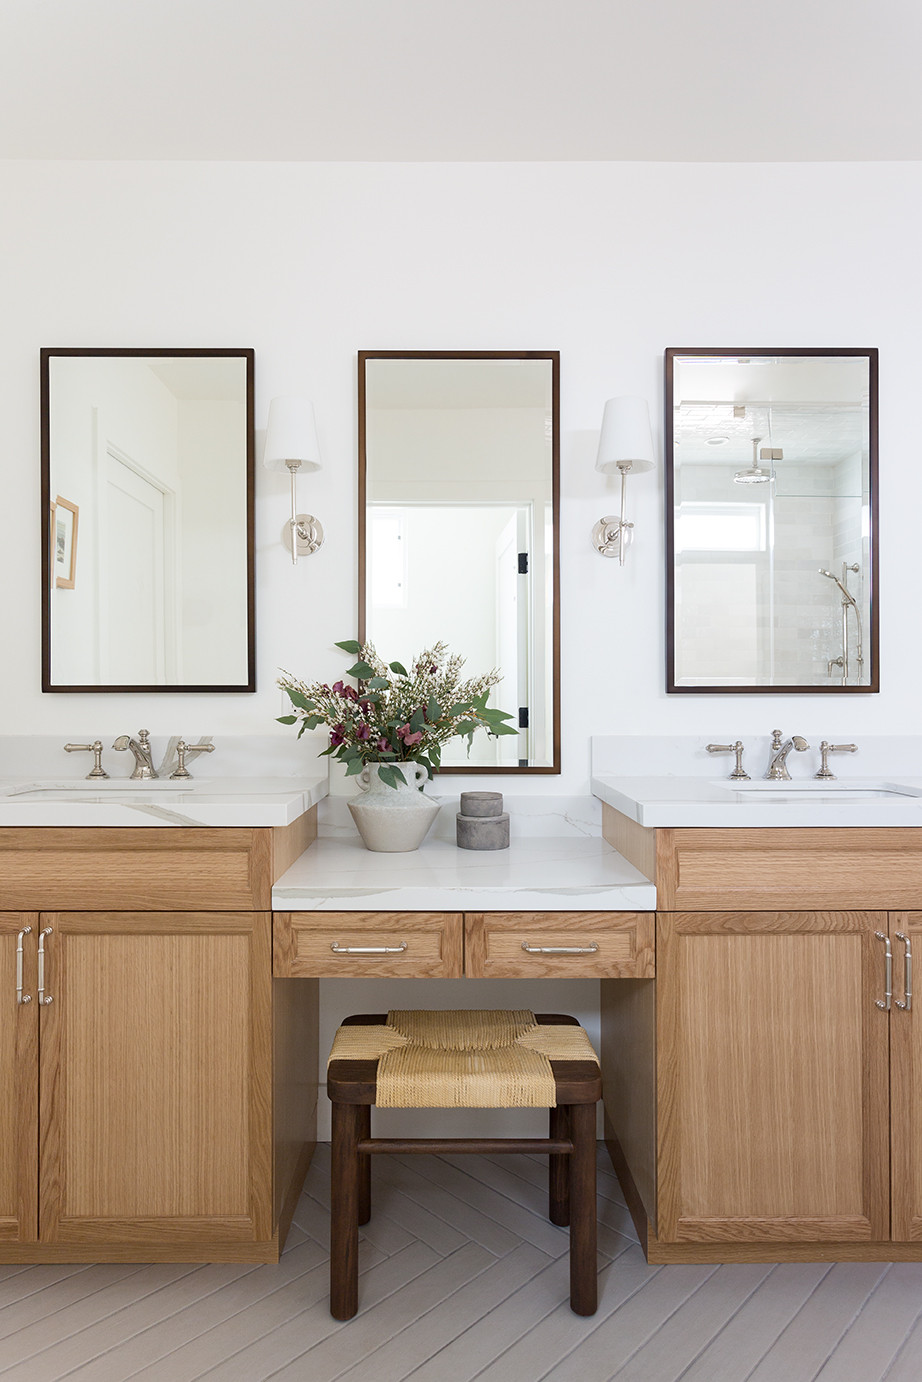 bathroom with oak cabinets and Quartz counters by Lindsey Brooke Design